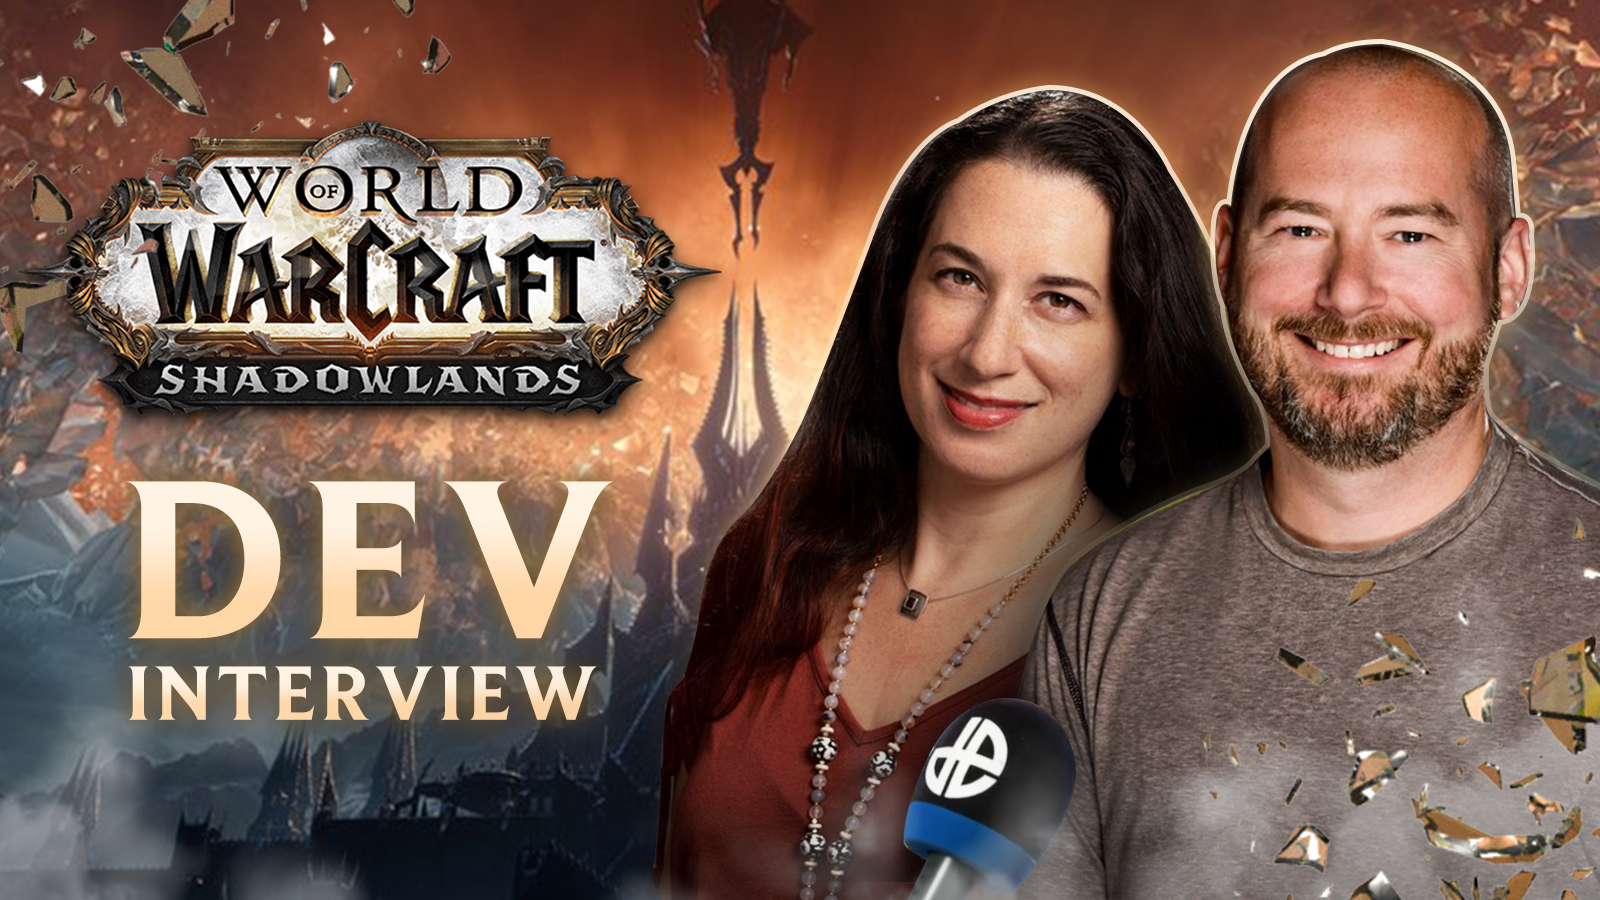 Sarah Boulian Verral and Patrick Dawson on a Shadowlands background for the dev interview